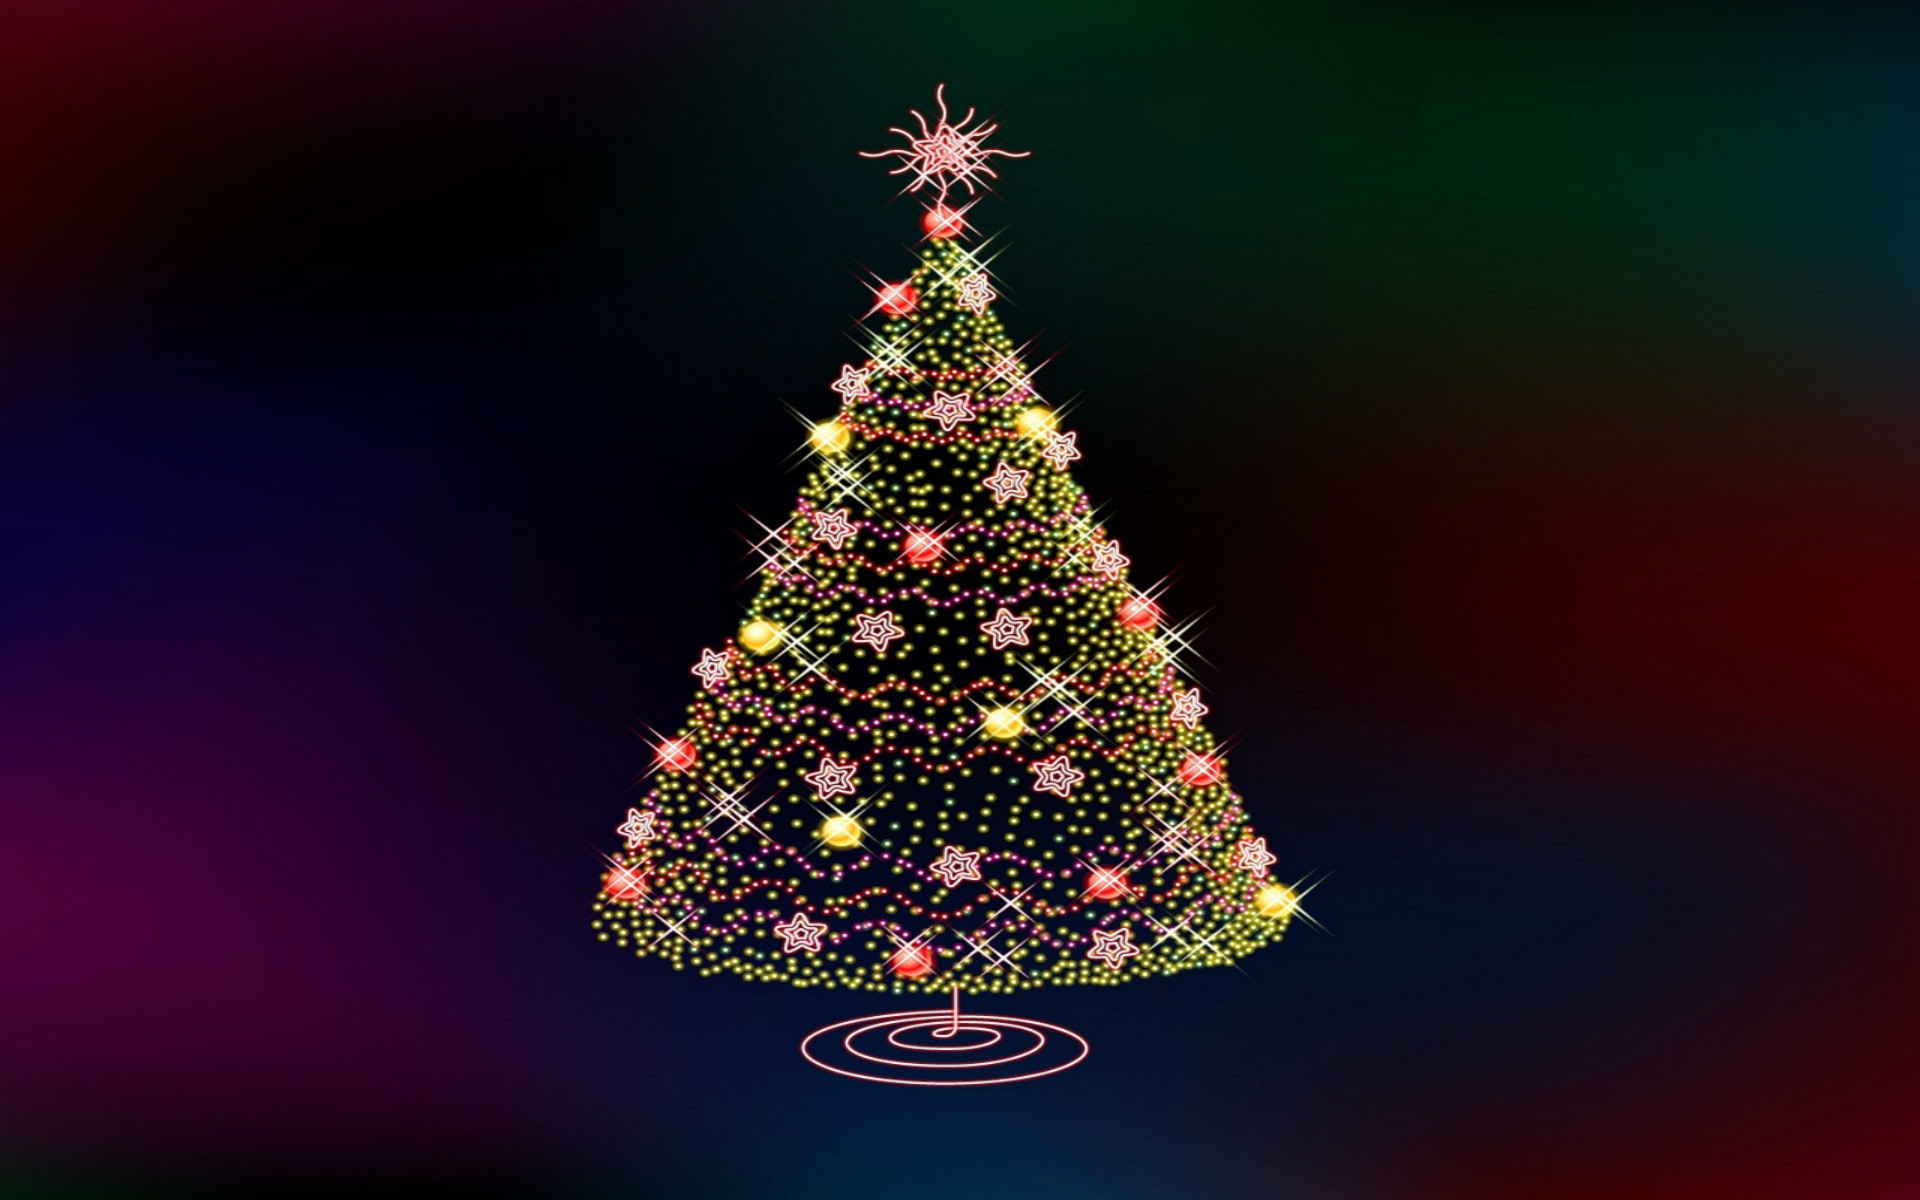 1920x1080 3D Christmas Countdown Tree For IPhone 6 Plus 5s IPad